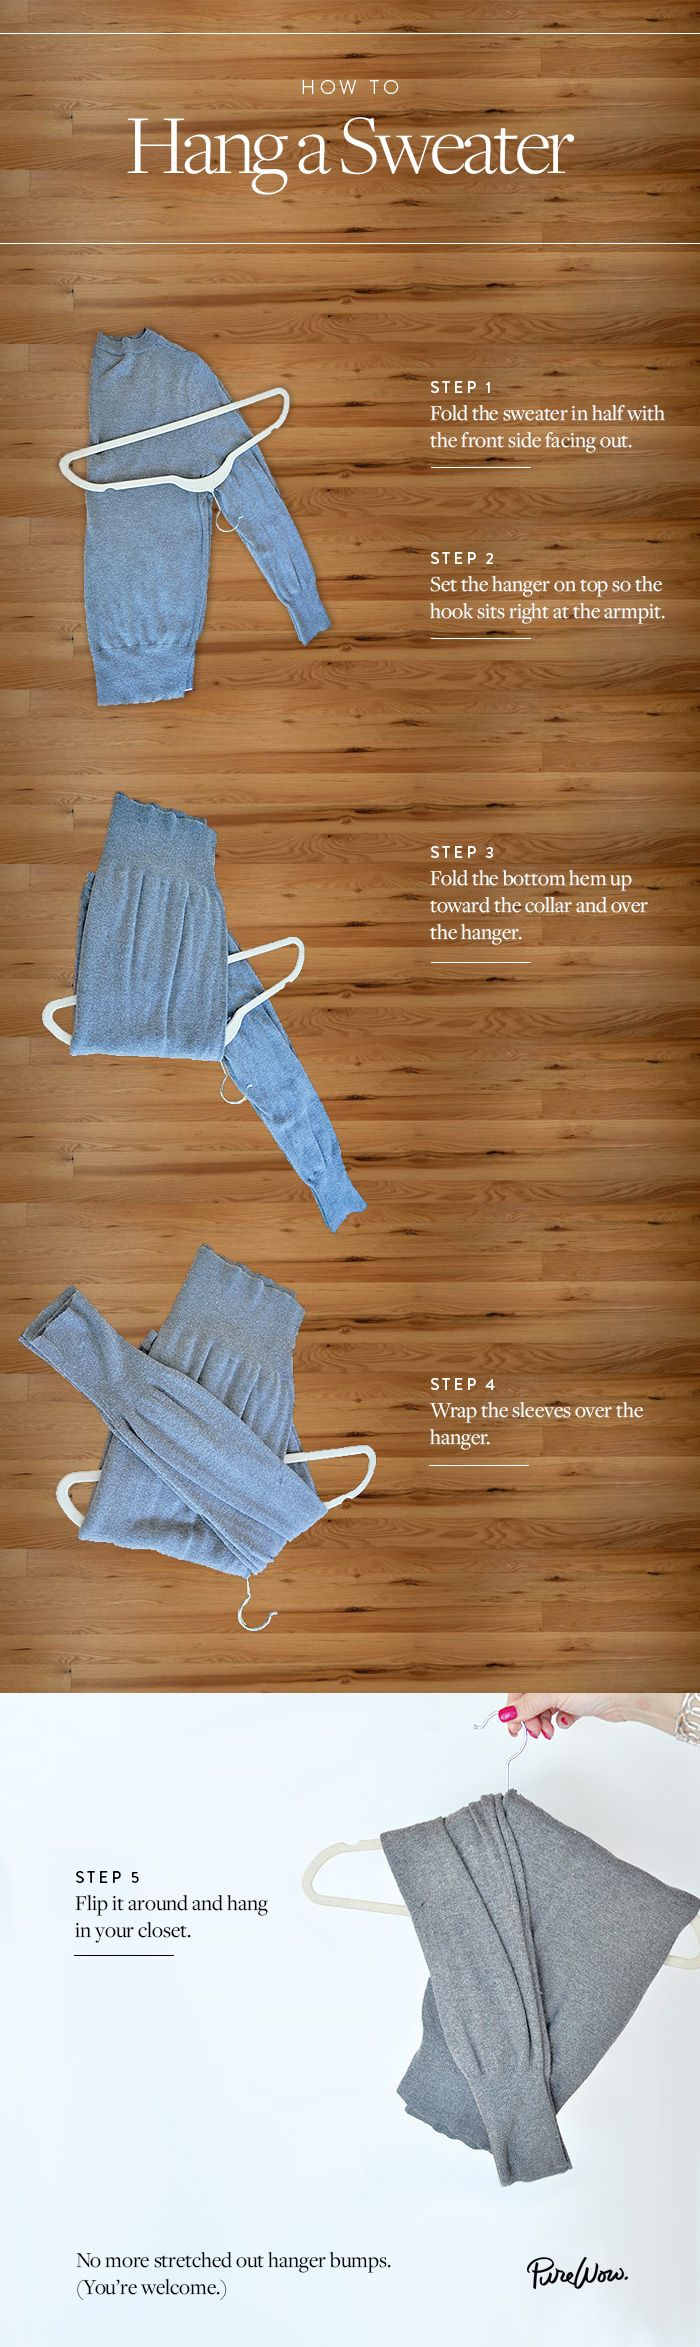 Infographic: This Hanger Trick Will Save Your Sweaters | Shape Magazine